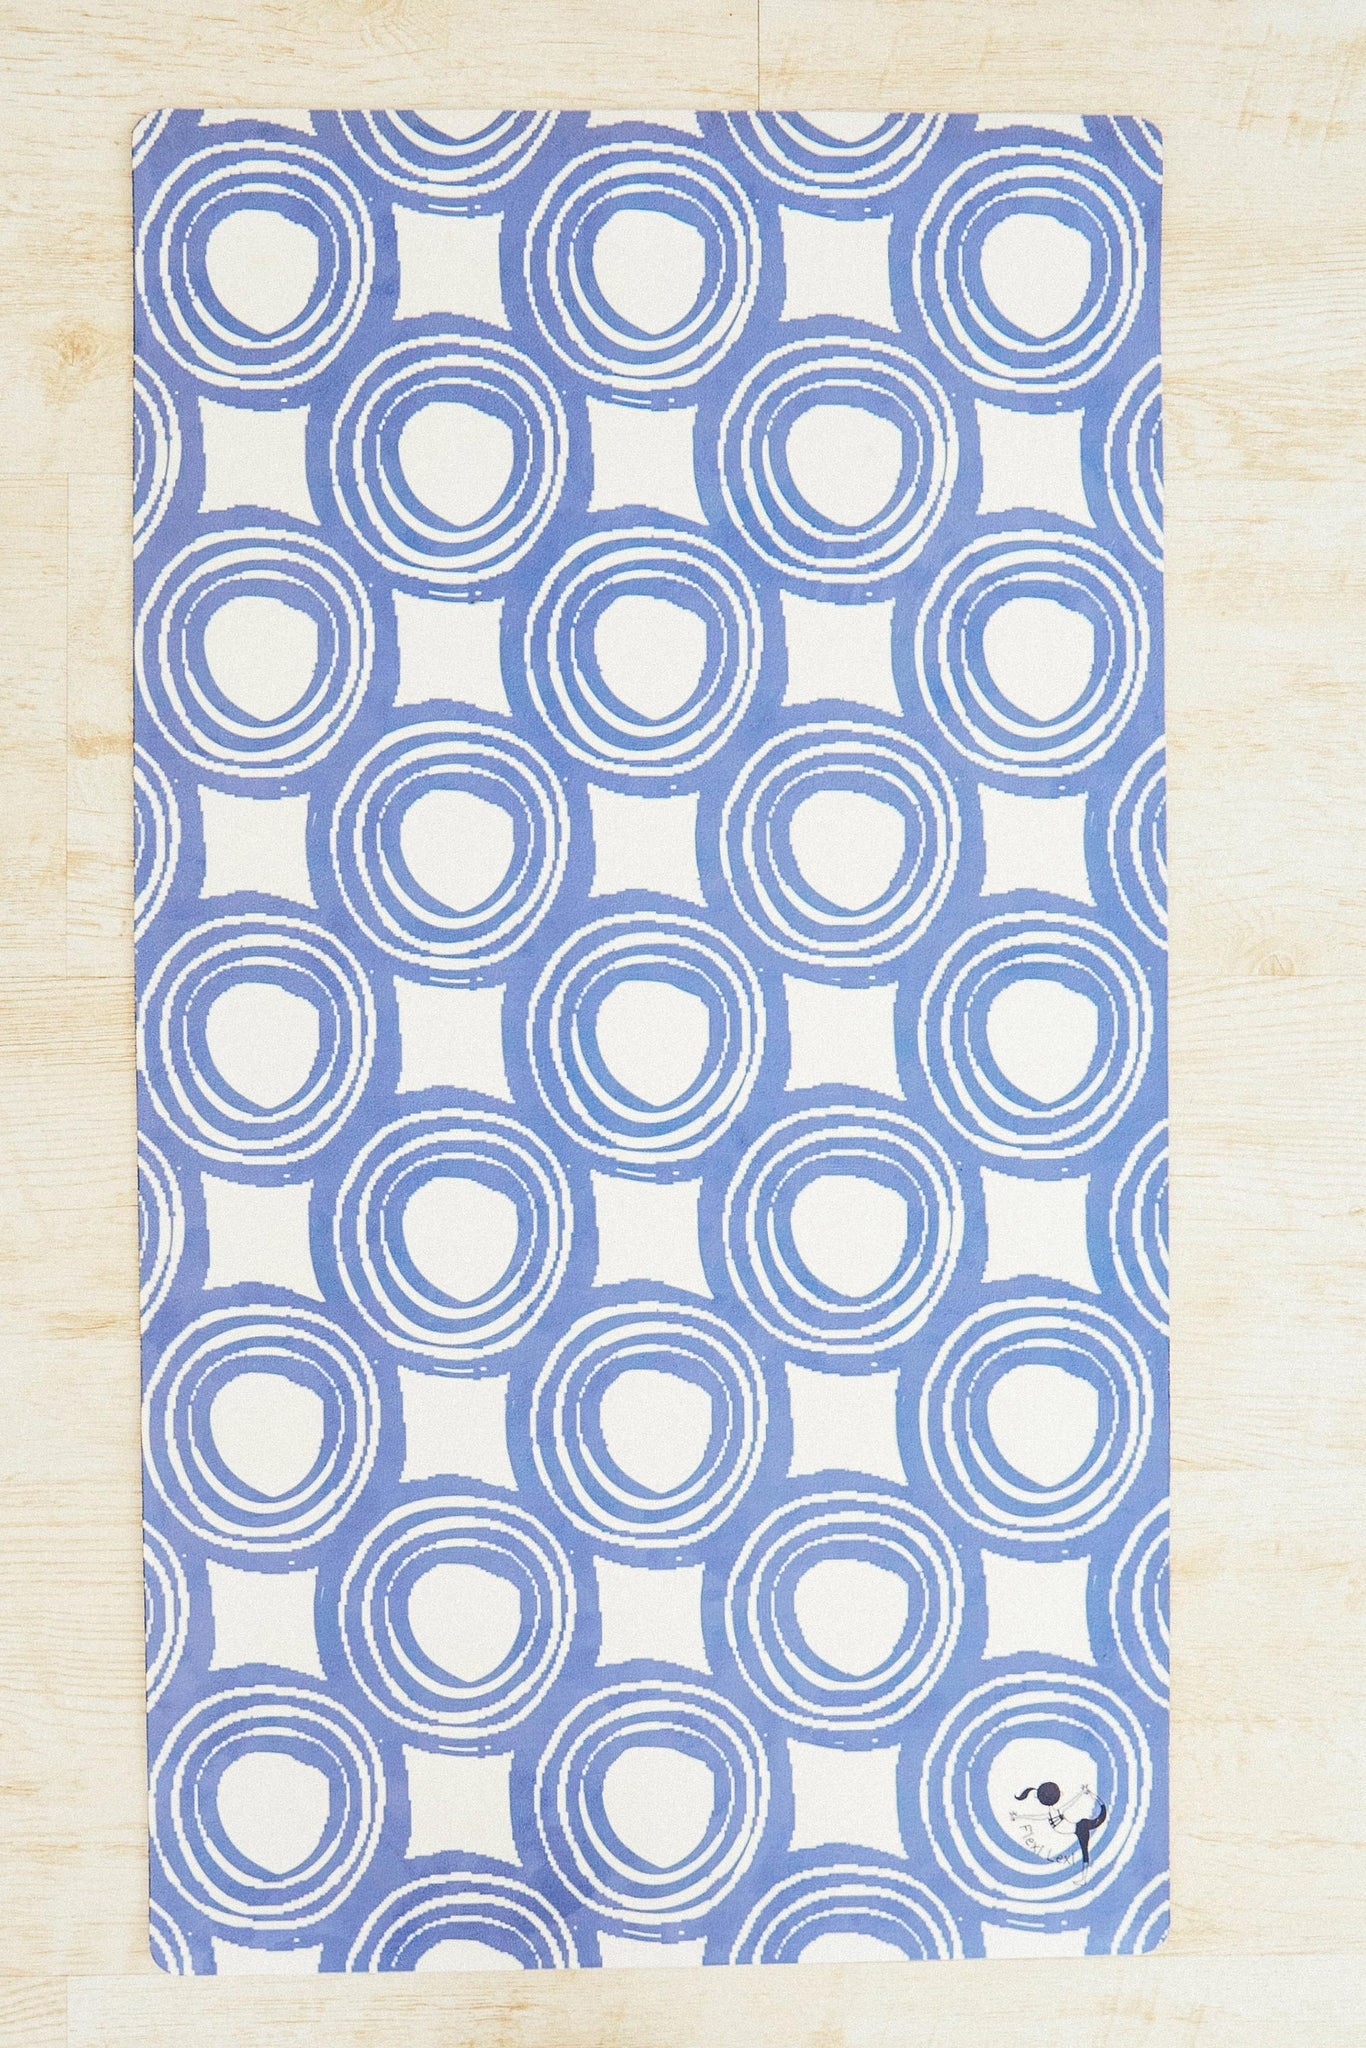 Blue Swirls Flexi Yoga Mat Adult and Mini